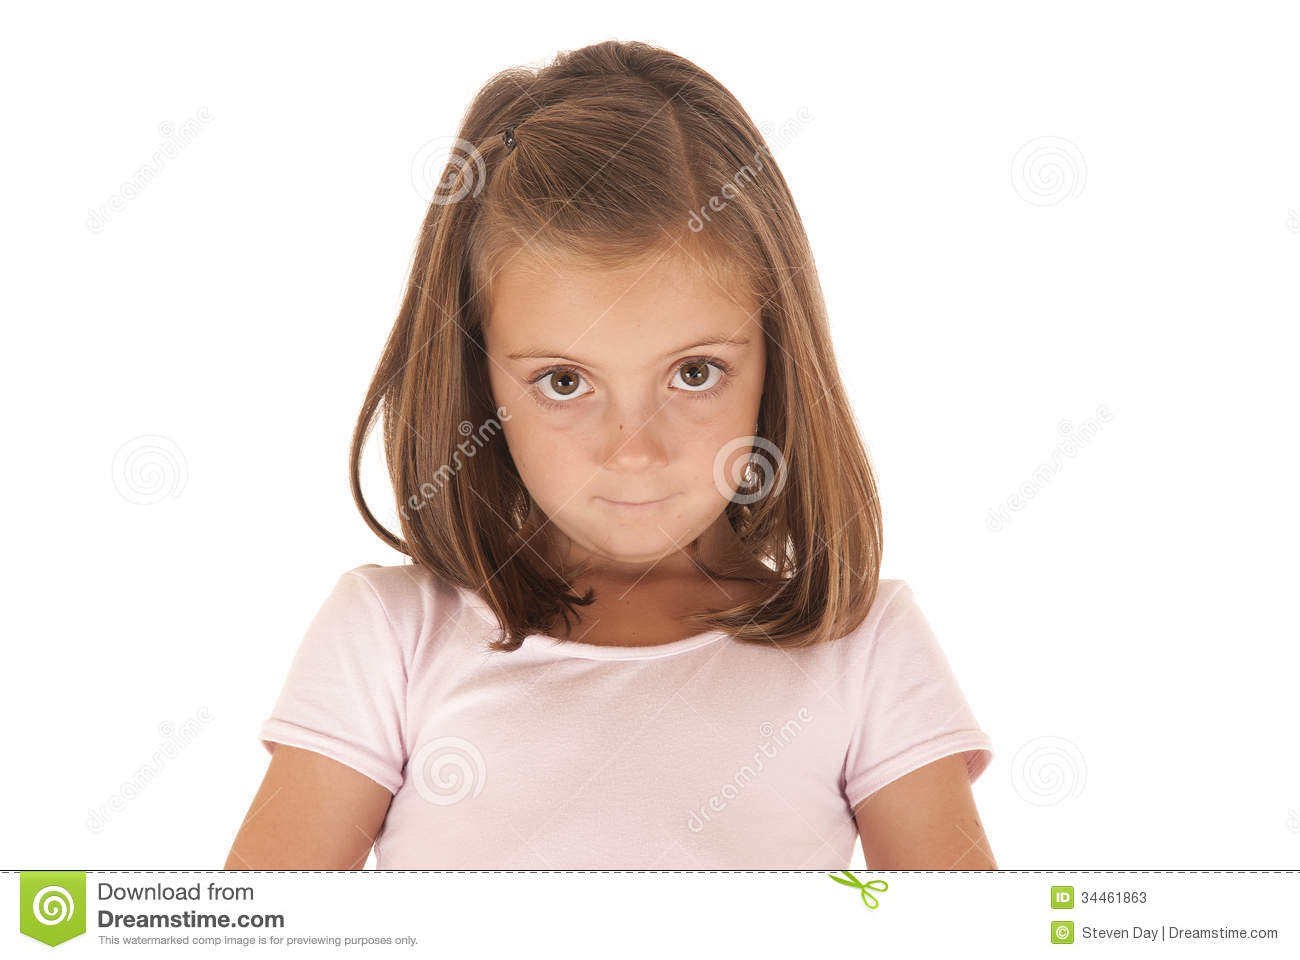 Young Girl With Big Eyes Looking At Camera With An Stock Photos - Image 34461863-5192